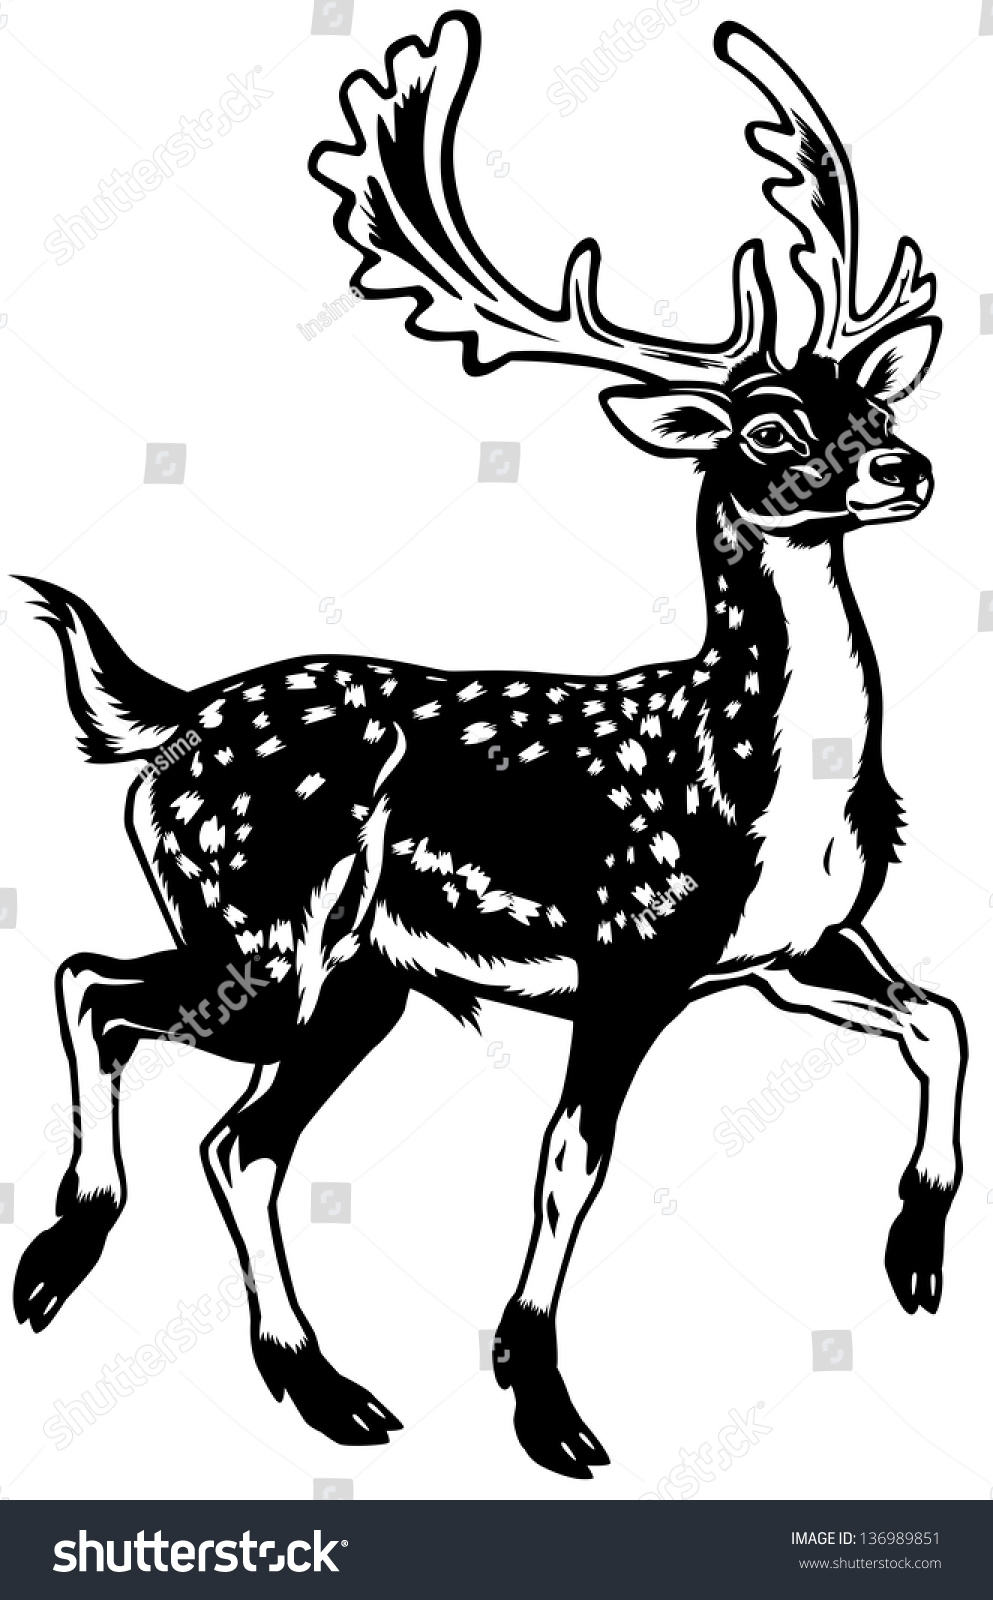 Deer illustration black and white - photo#18